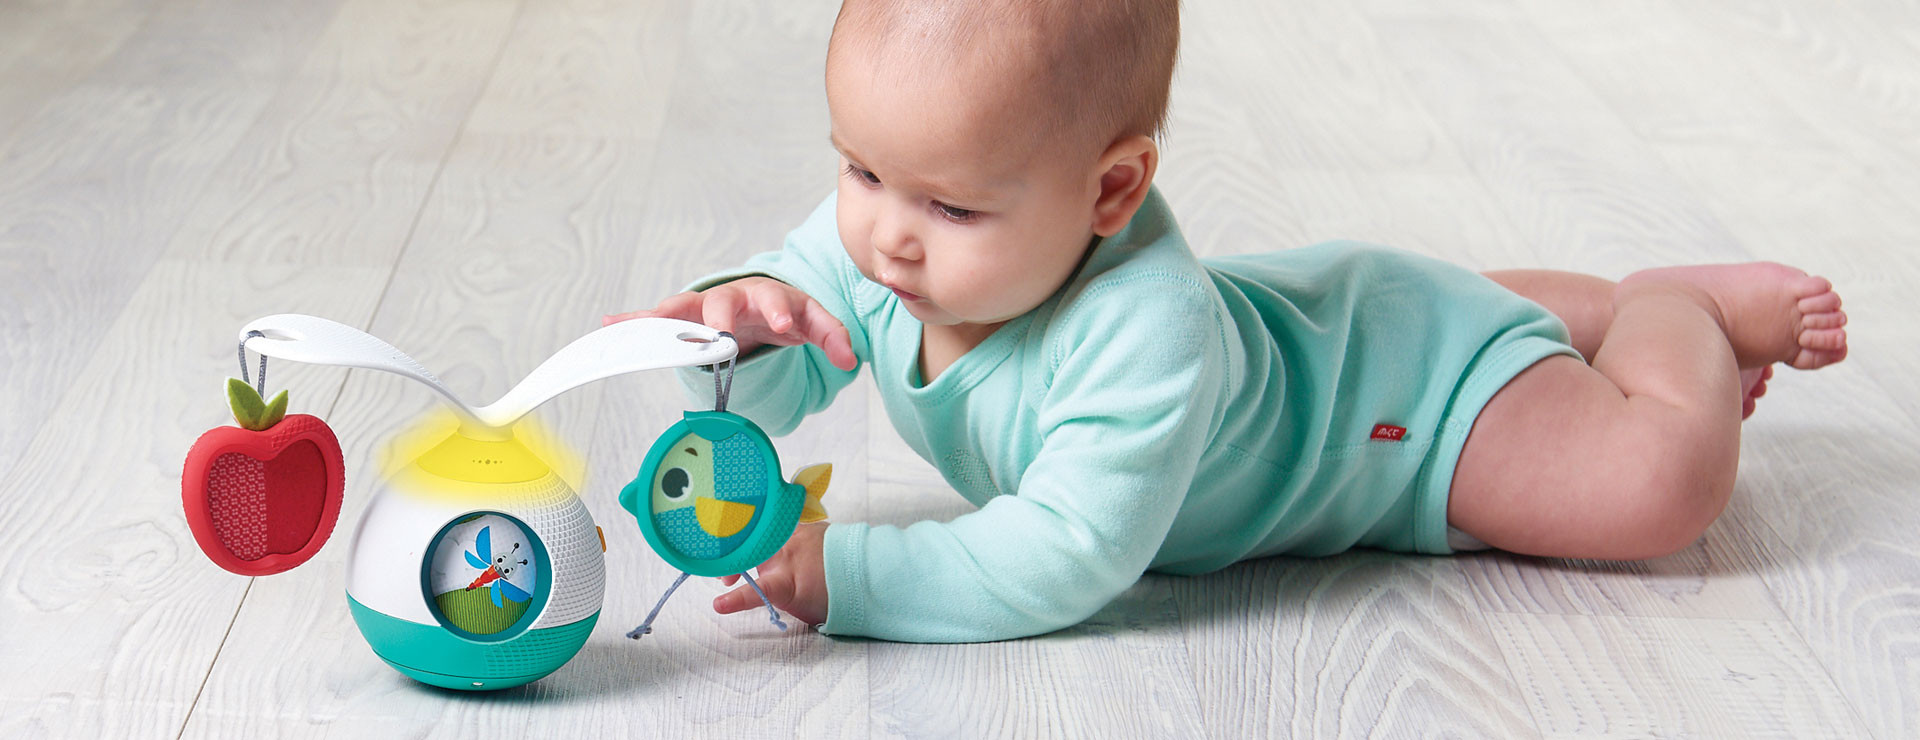 The easy way to extend tummy time – an essential position for baby's development